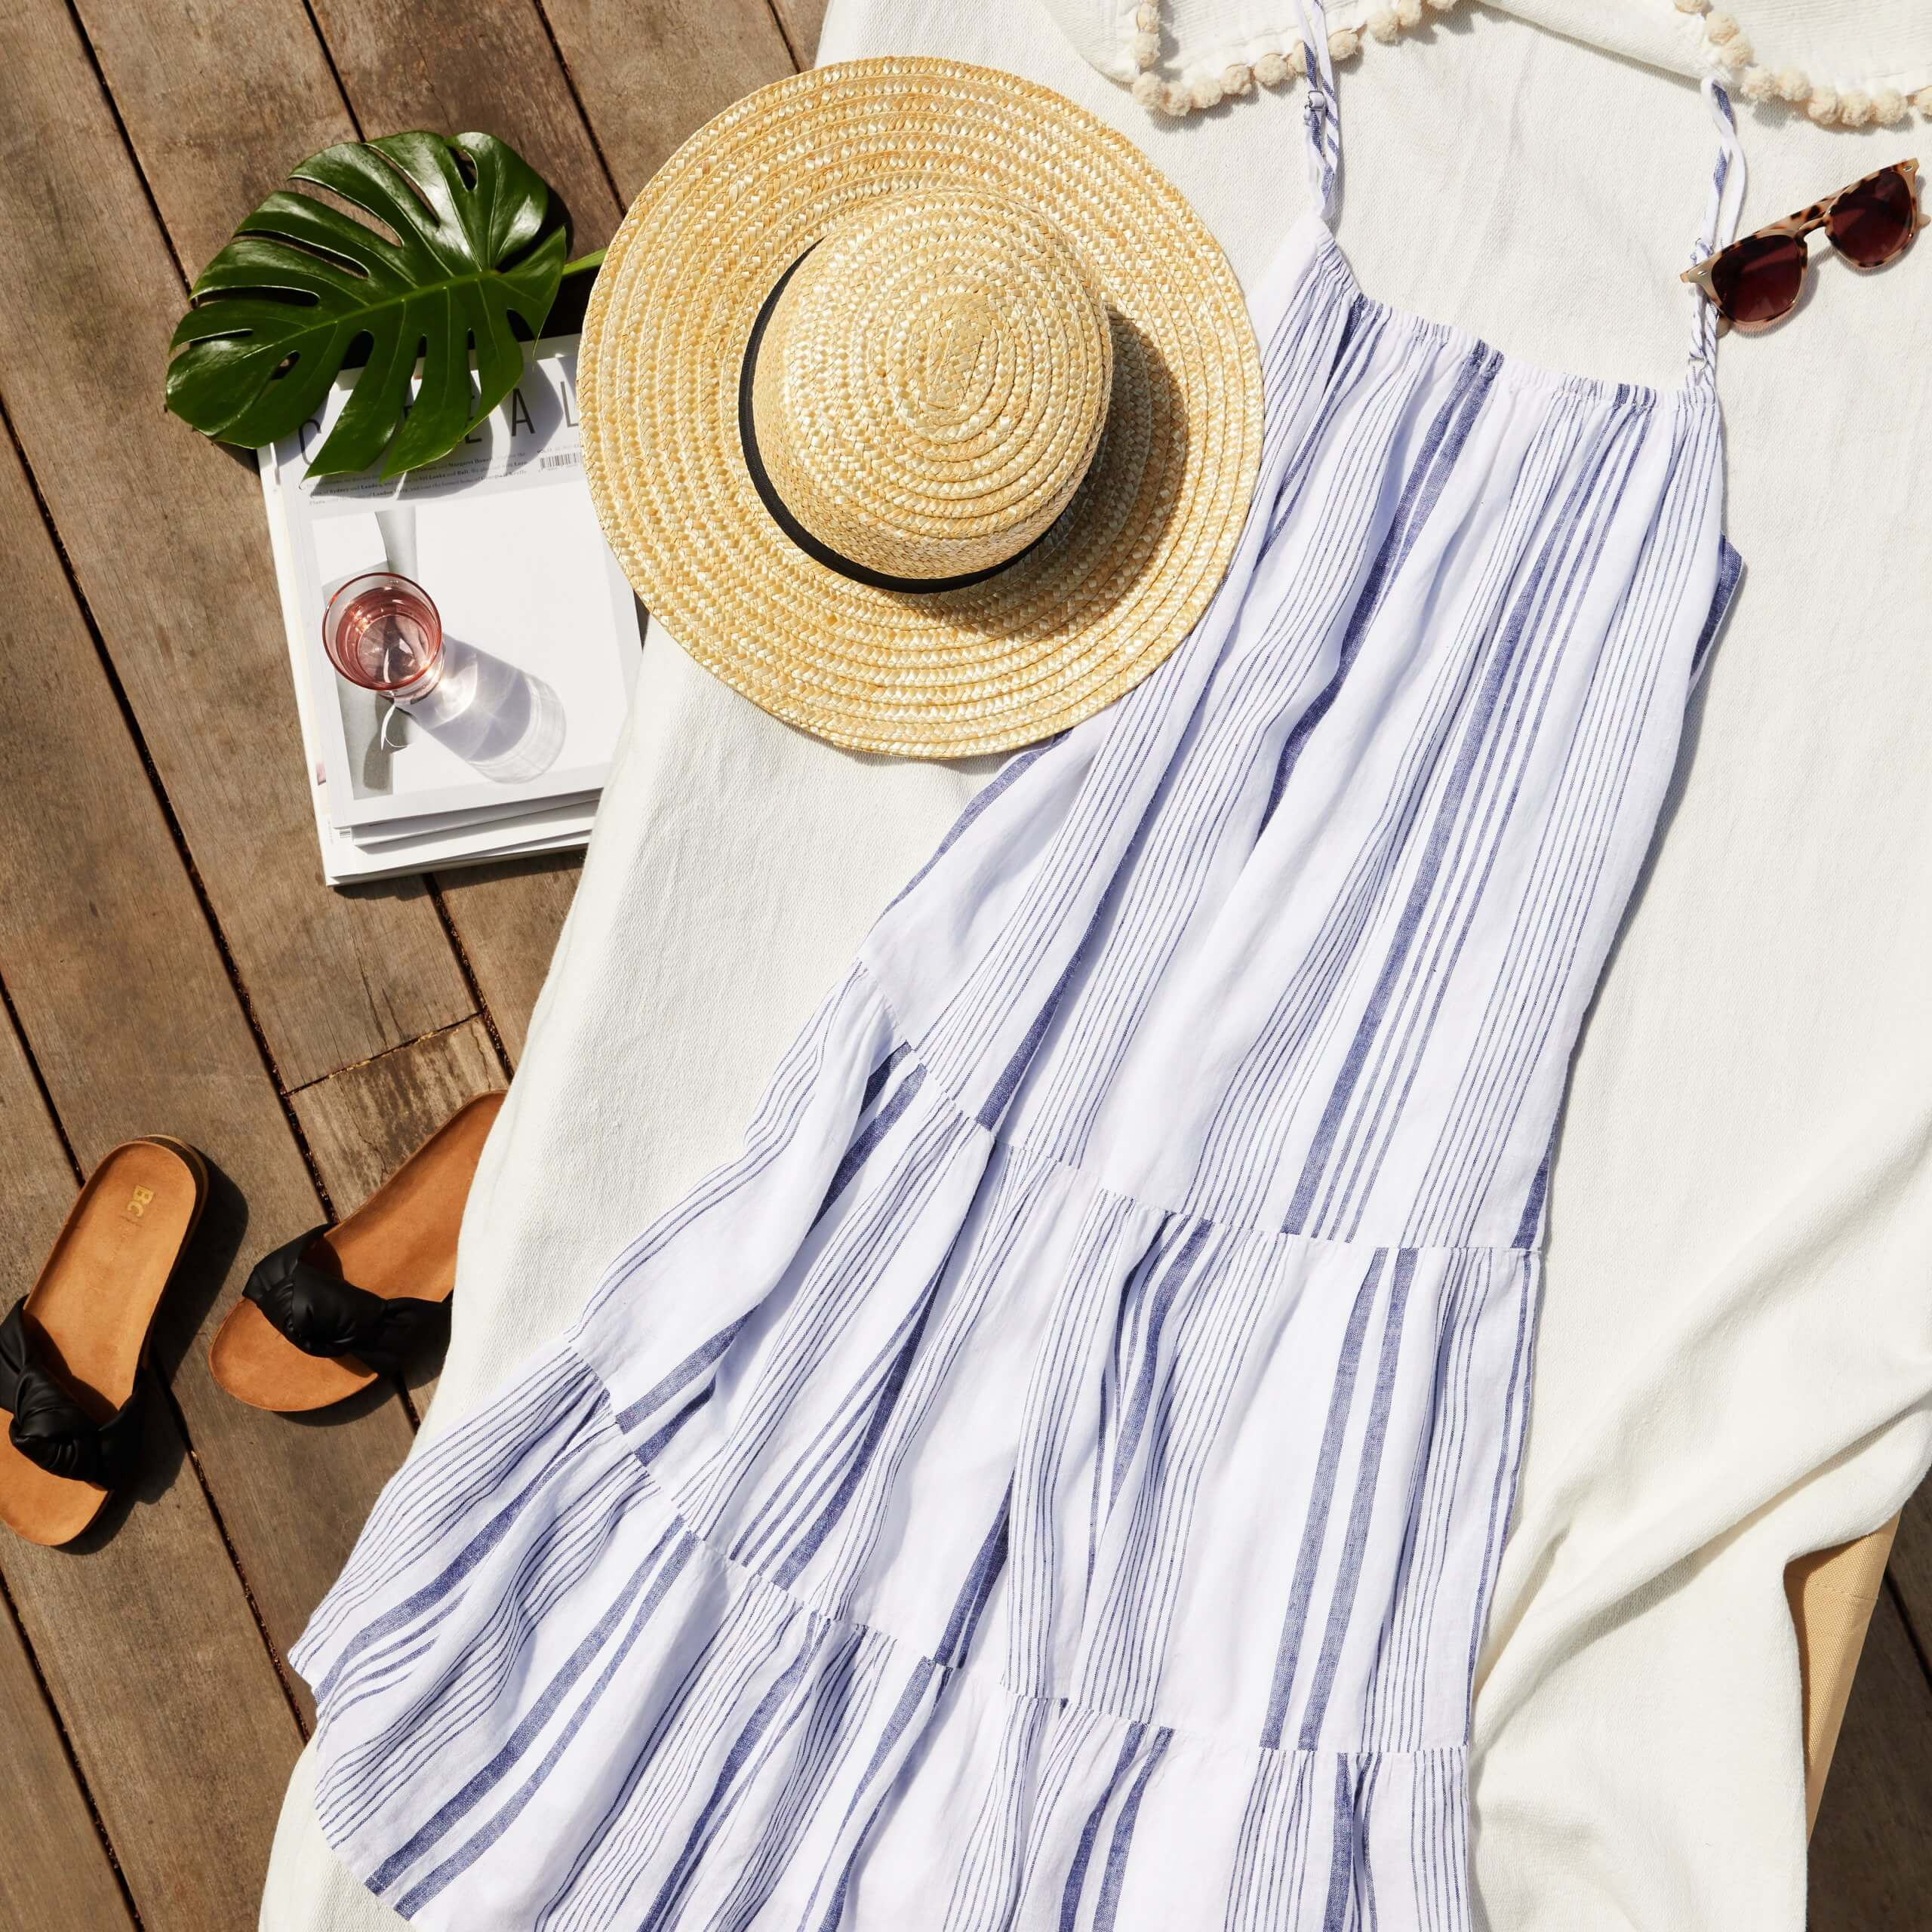 Stitch Fix women's boho outfit featuring blue stripe tiered maxi-dress with straw hat, sunglasses and slide sandals.